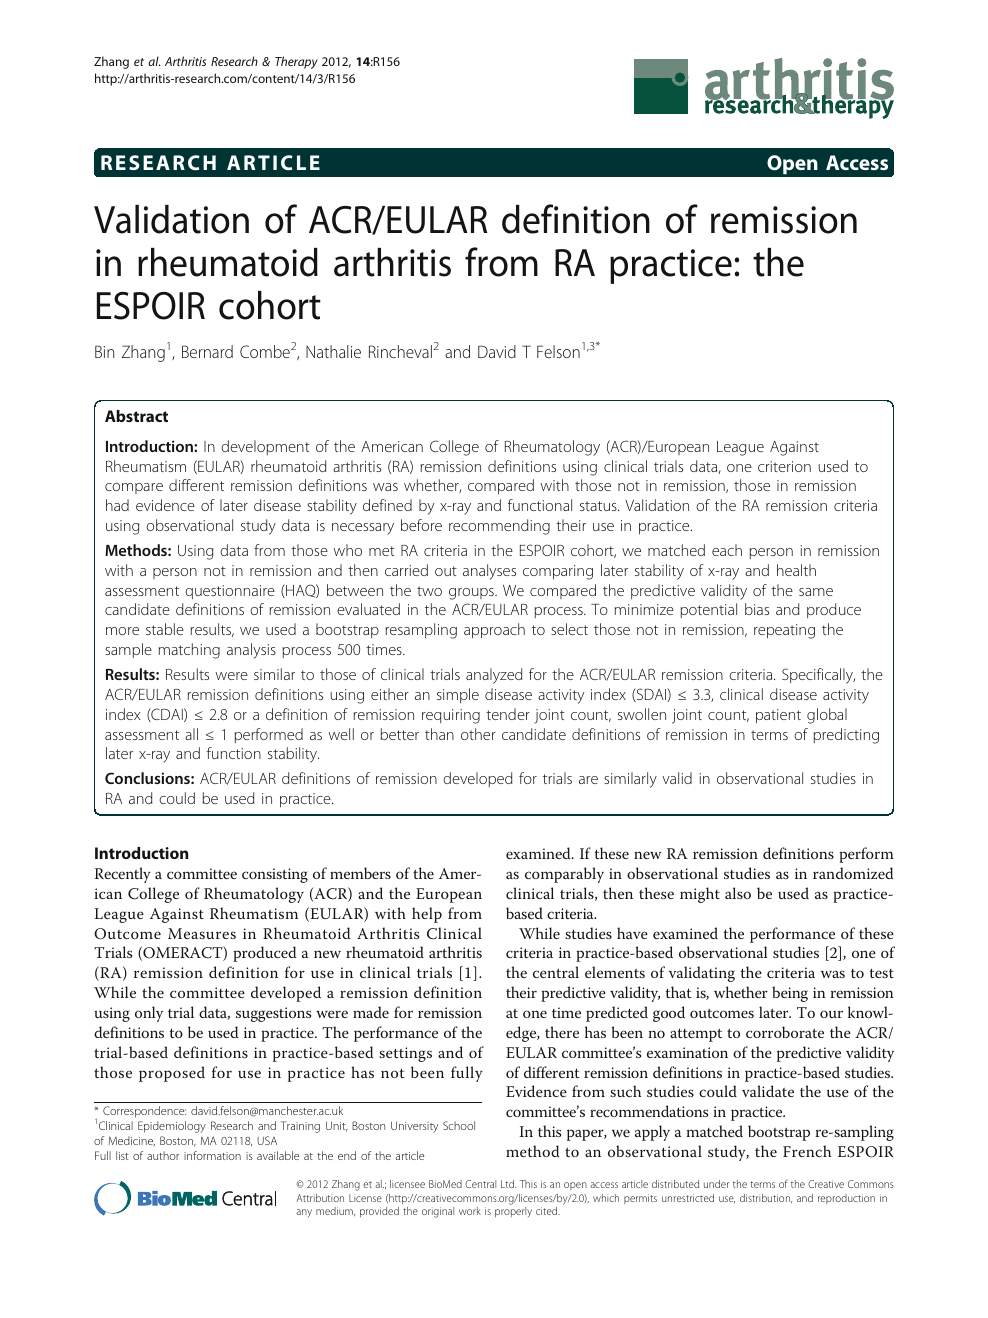 Validation Of Acr Eular Definition Of Remission In Rheumatoid Arthritis From Ra Practice The Espoir Cohort Topic Of Research Paper In Clinical Medicine Download Scholarly Article Pdf And Read For Free On